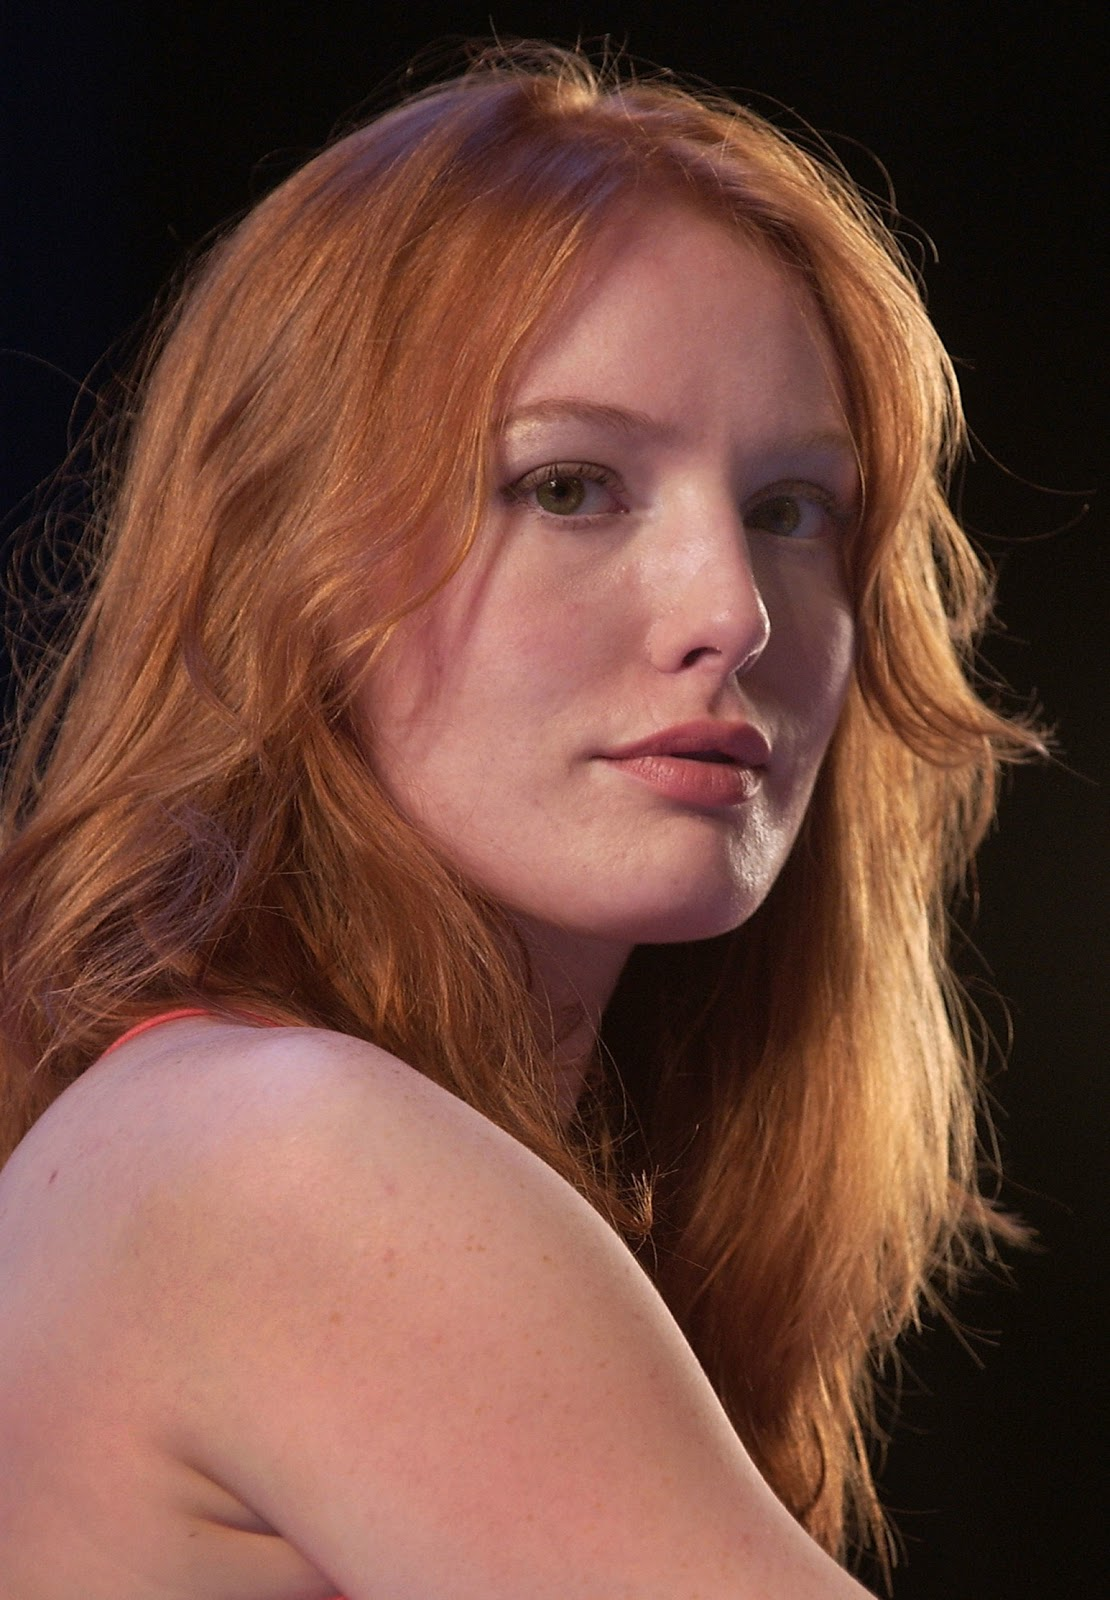 Alicia witt joint body 9